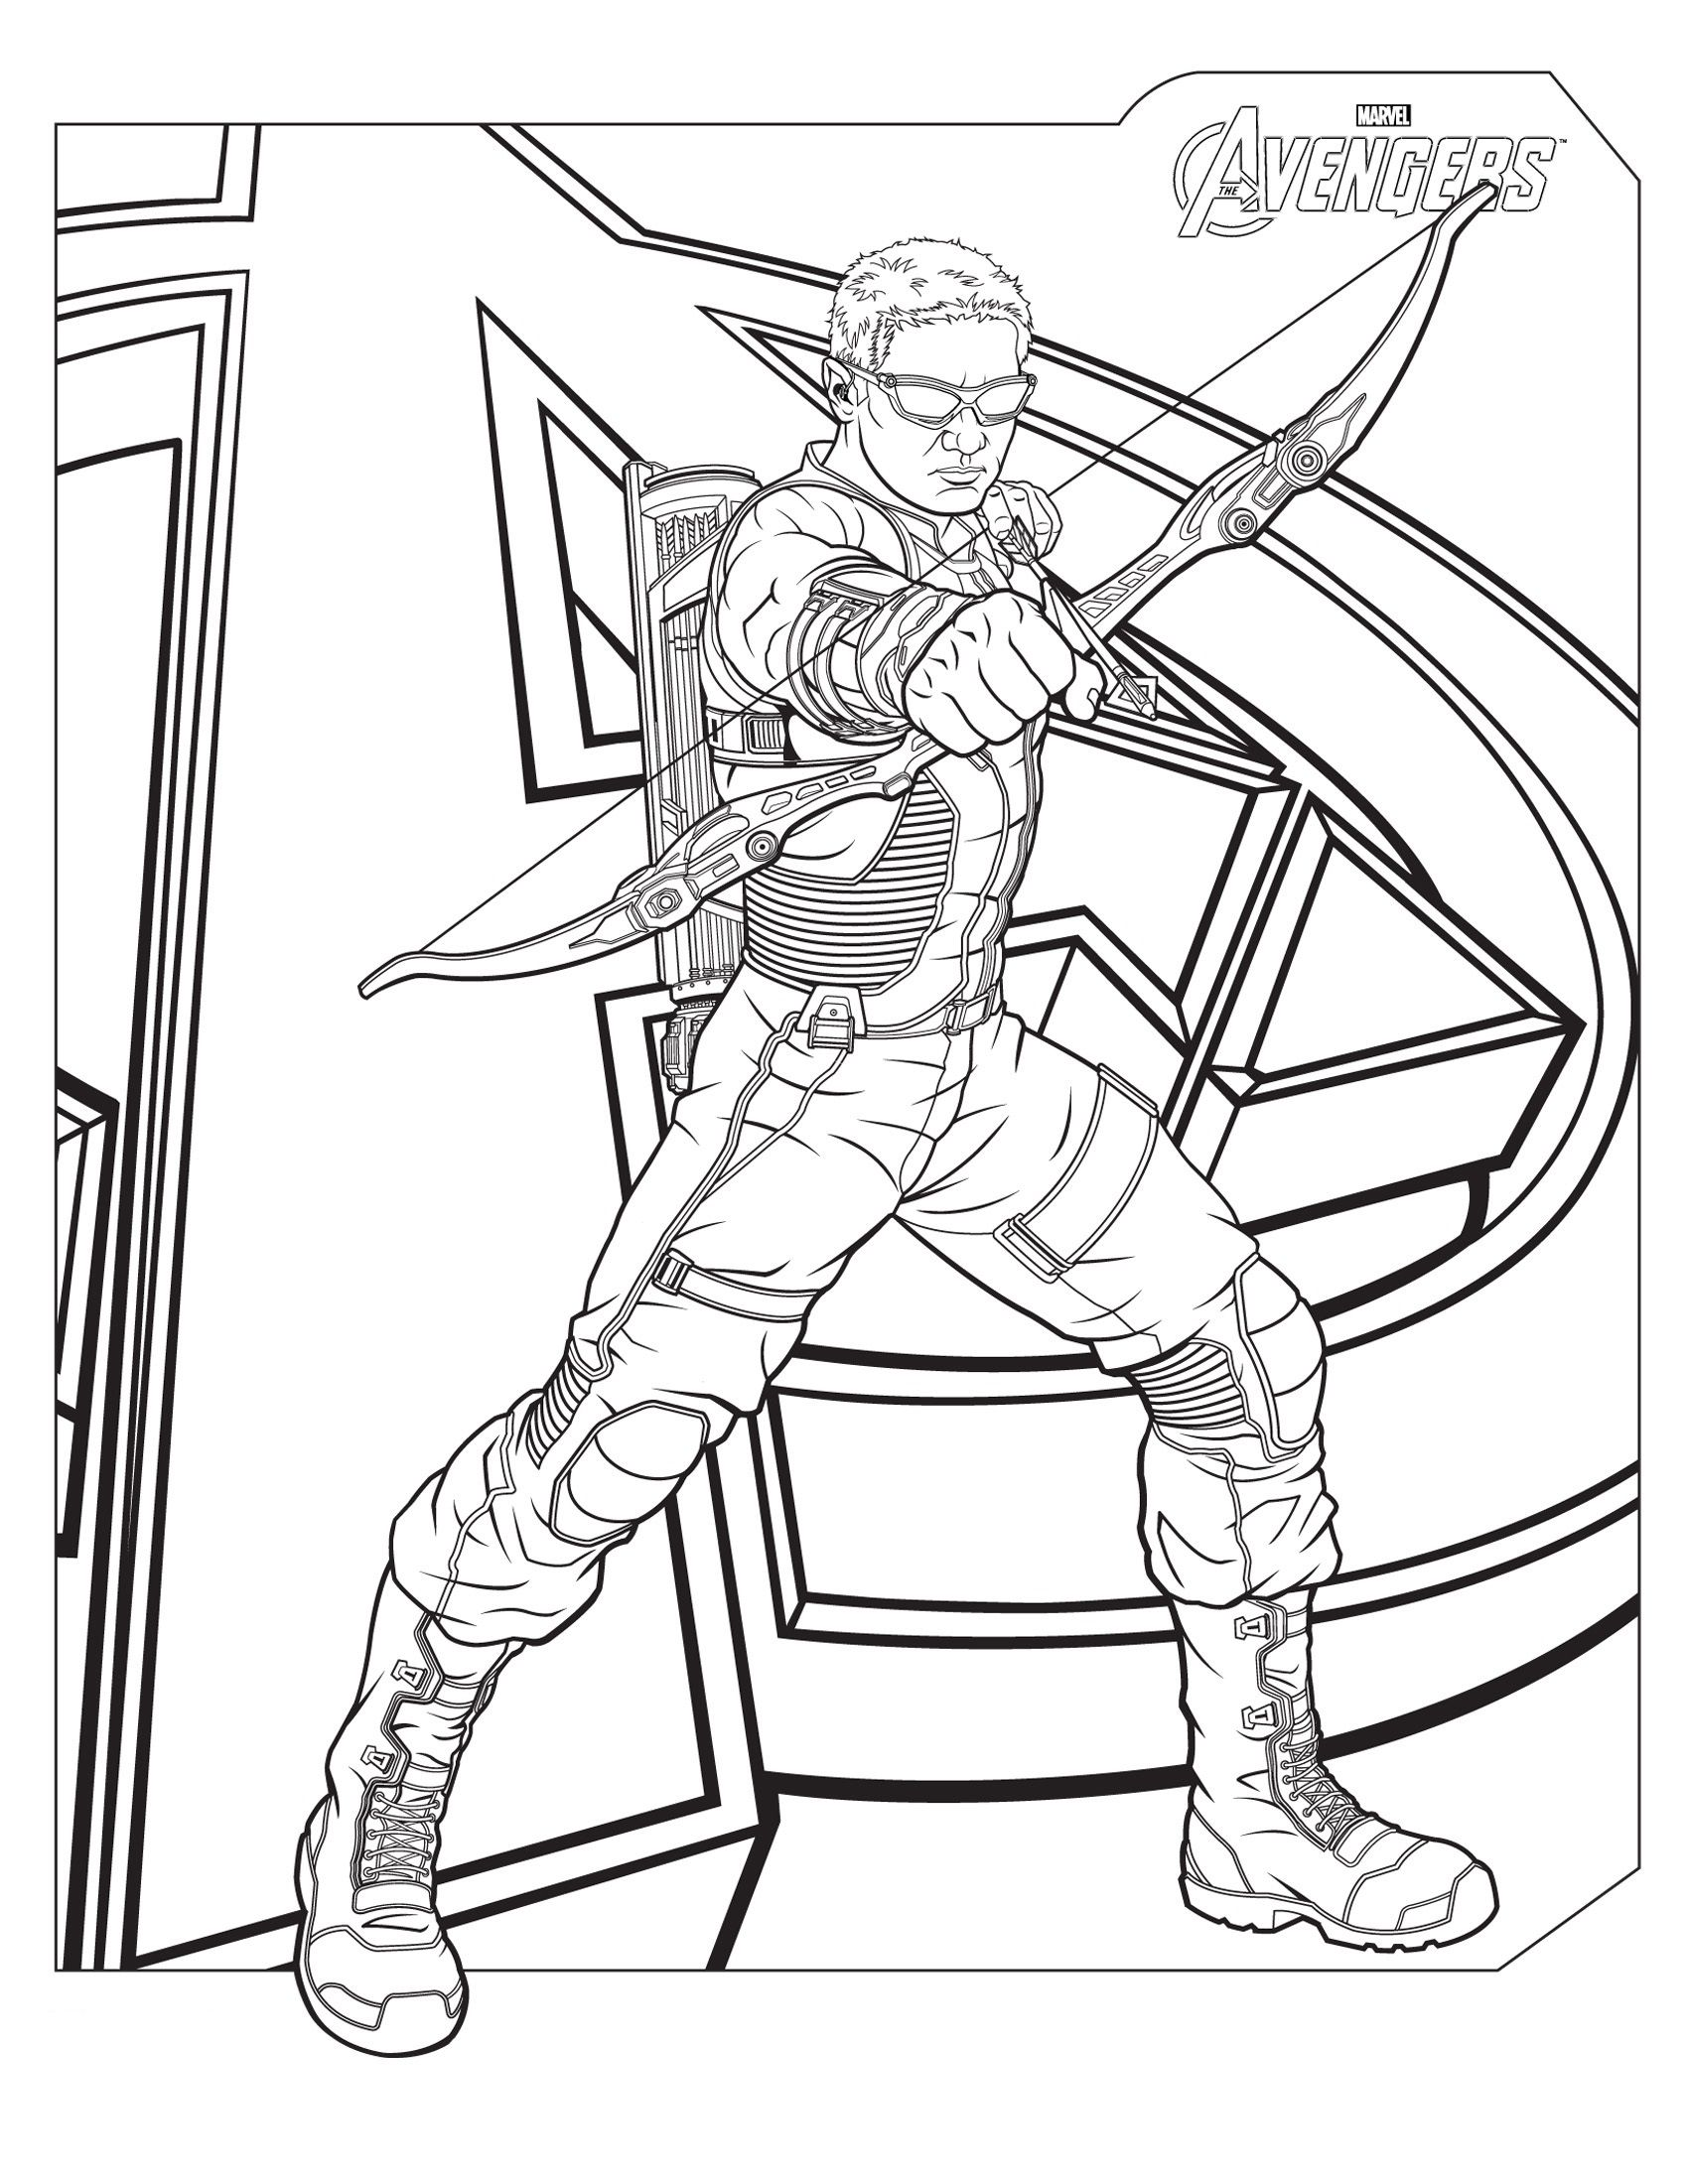 Hawkeye Coloring Pages Marvel Avengers Coloring Pages Marvel Coloring Avengers Coloring